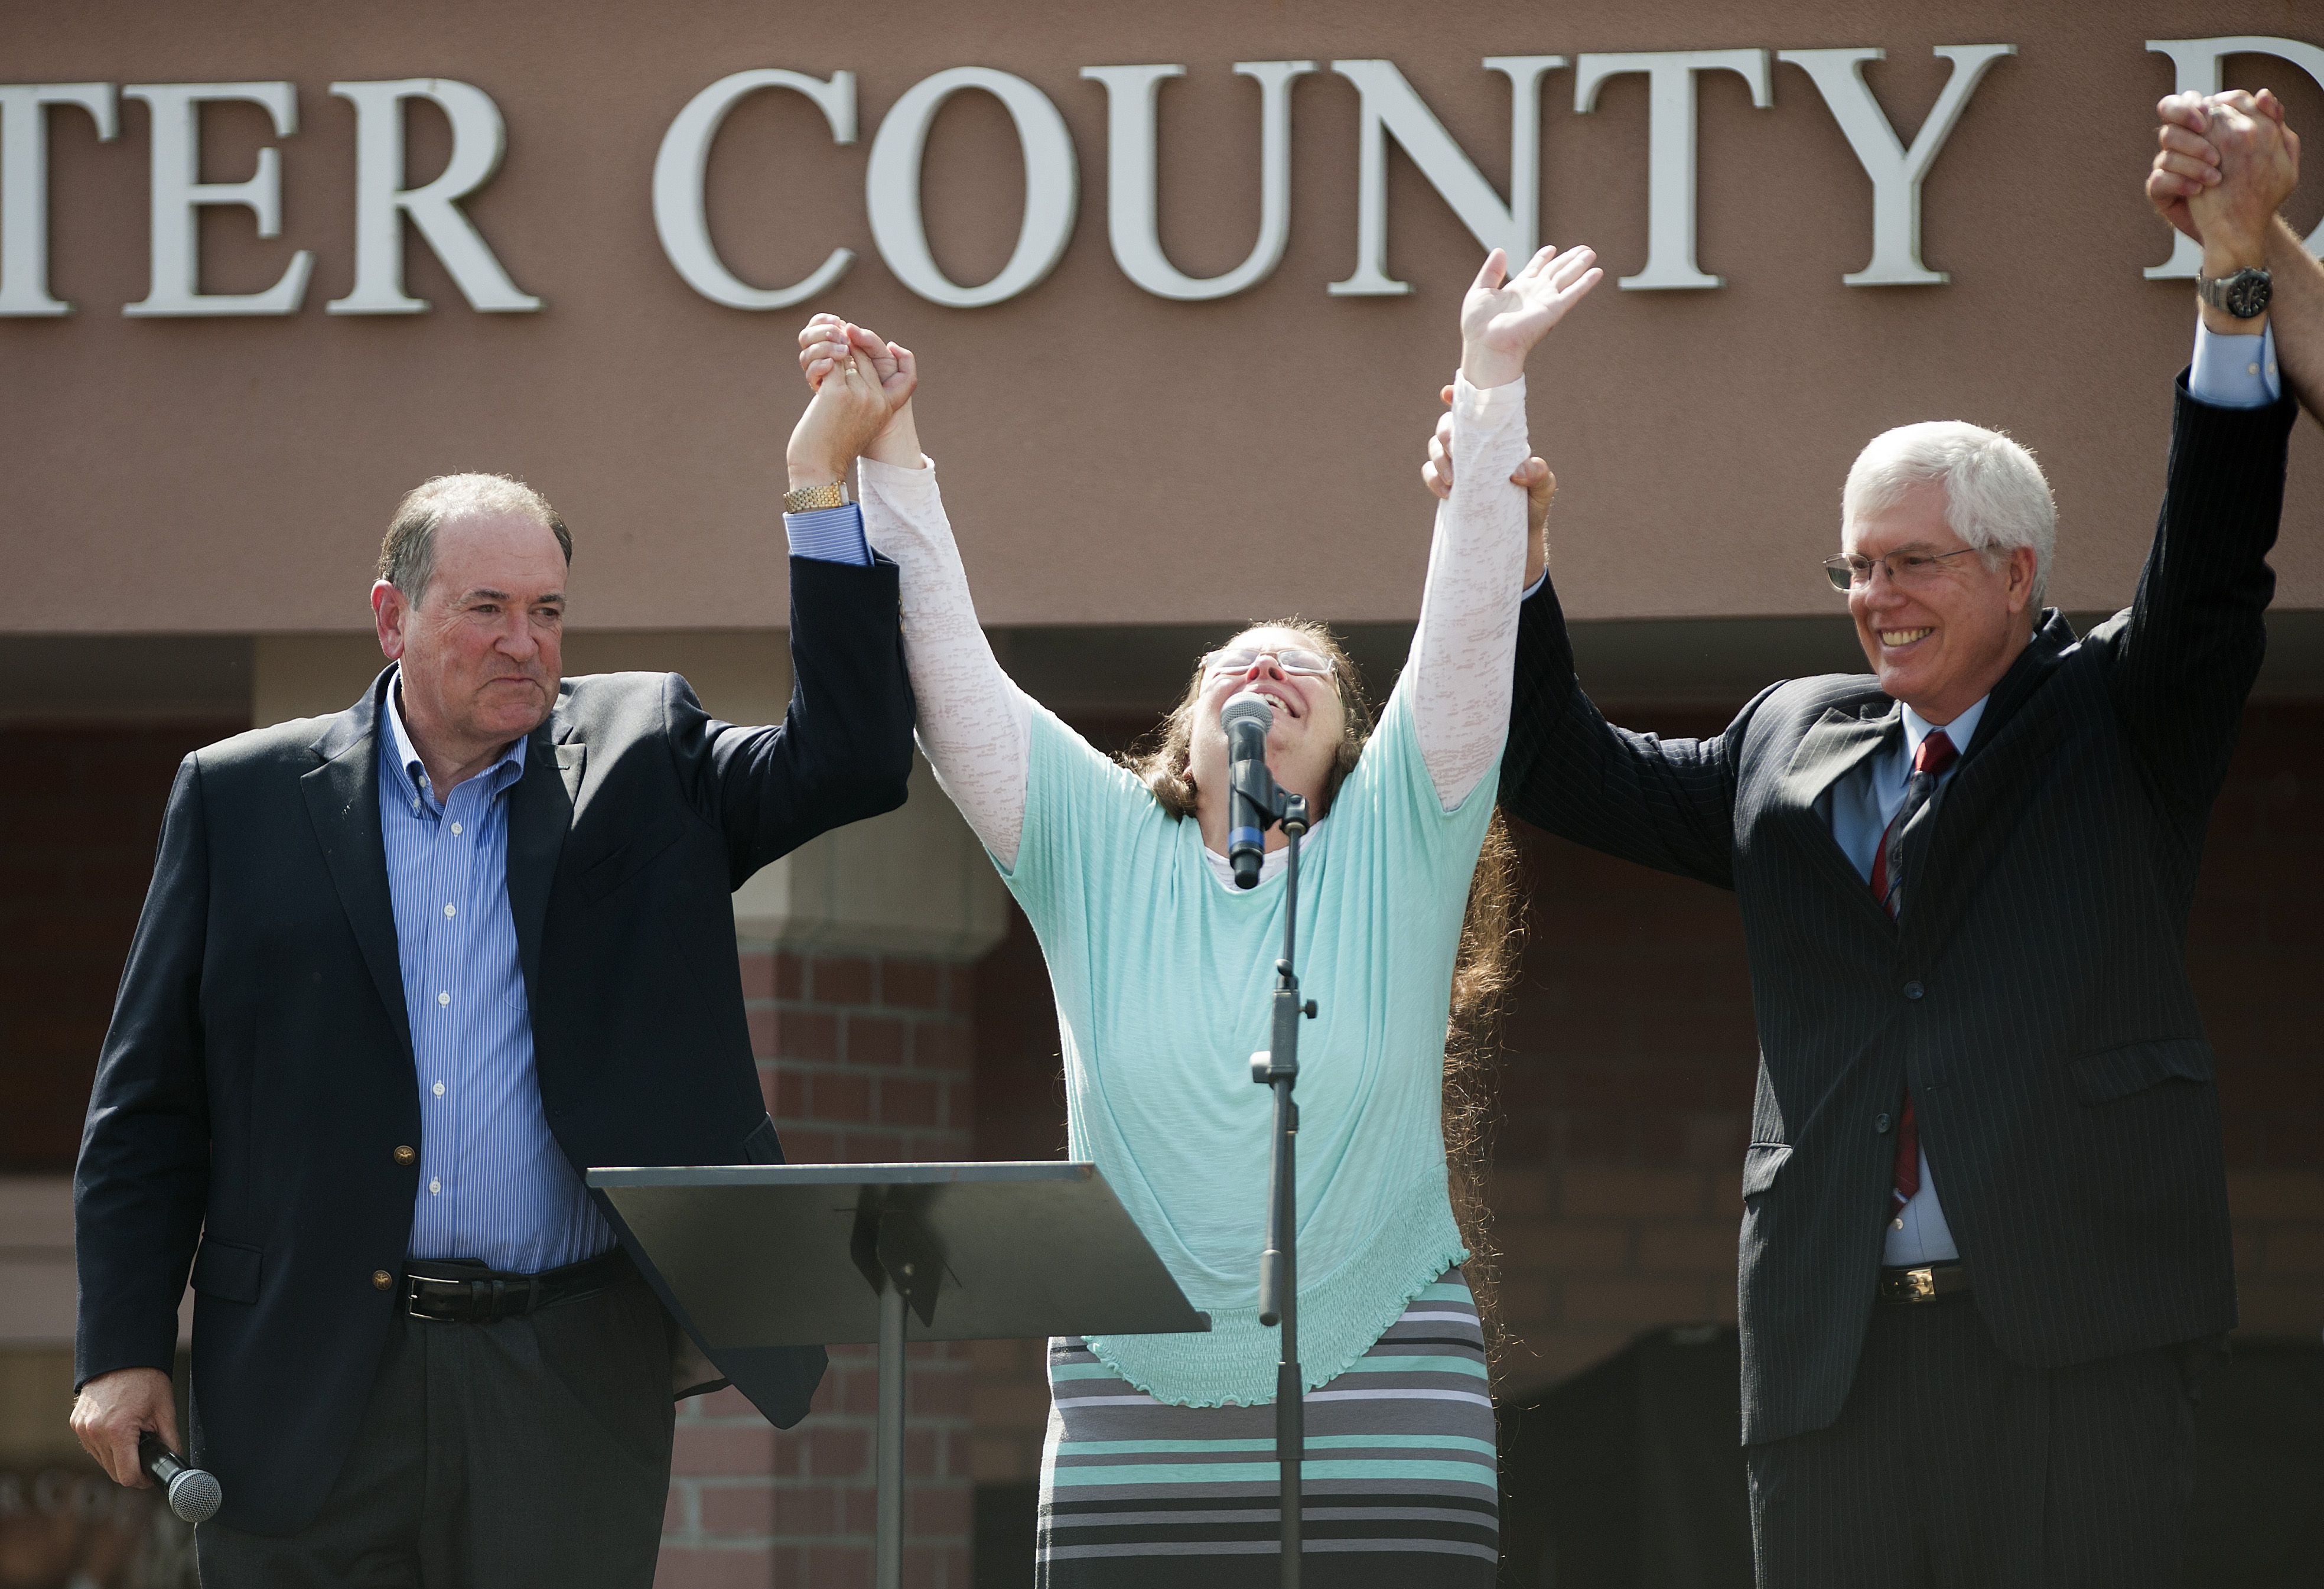 Kim Davis stands with Mike Huckabee after she was released from jail. She was held in contempt of court for refusing to issue gay marriage licenses.